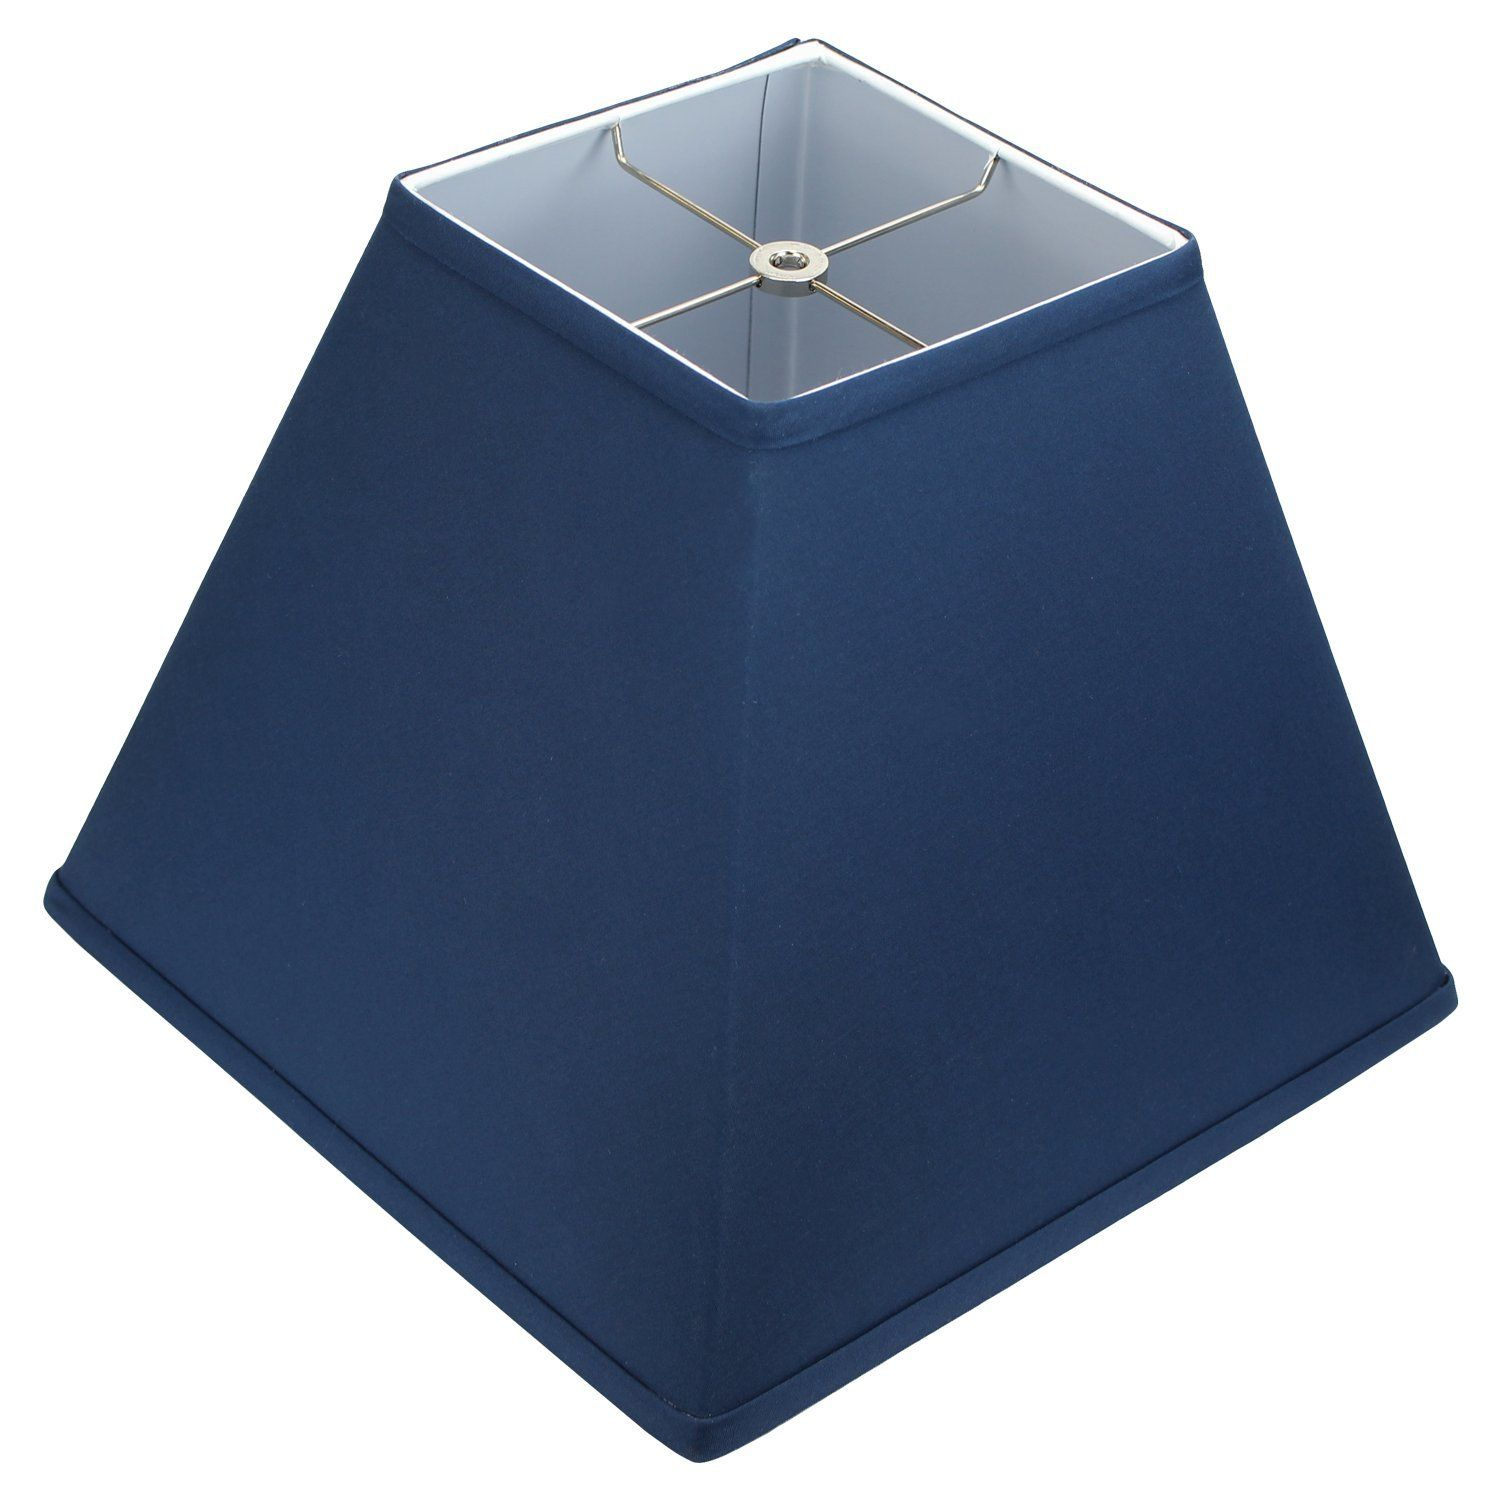 Fenchelshades Com 6 Top Dimension X 16 Bottom Dimension 12 Slant Height Lampshade Usa Made Navy Blue Want Additional Lamp Shades Light Fixtures Lampshades